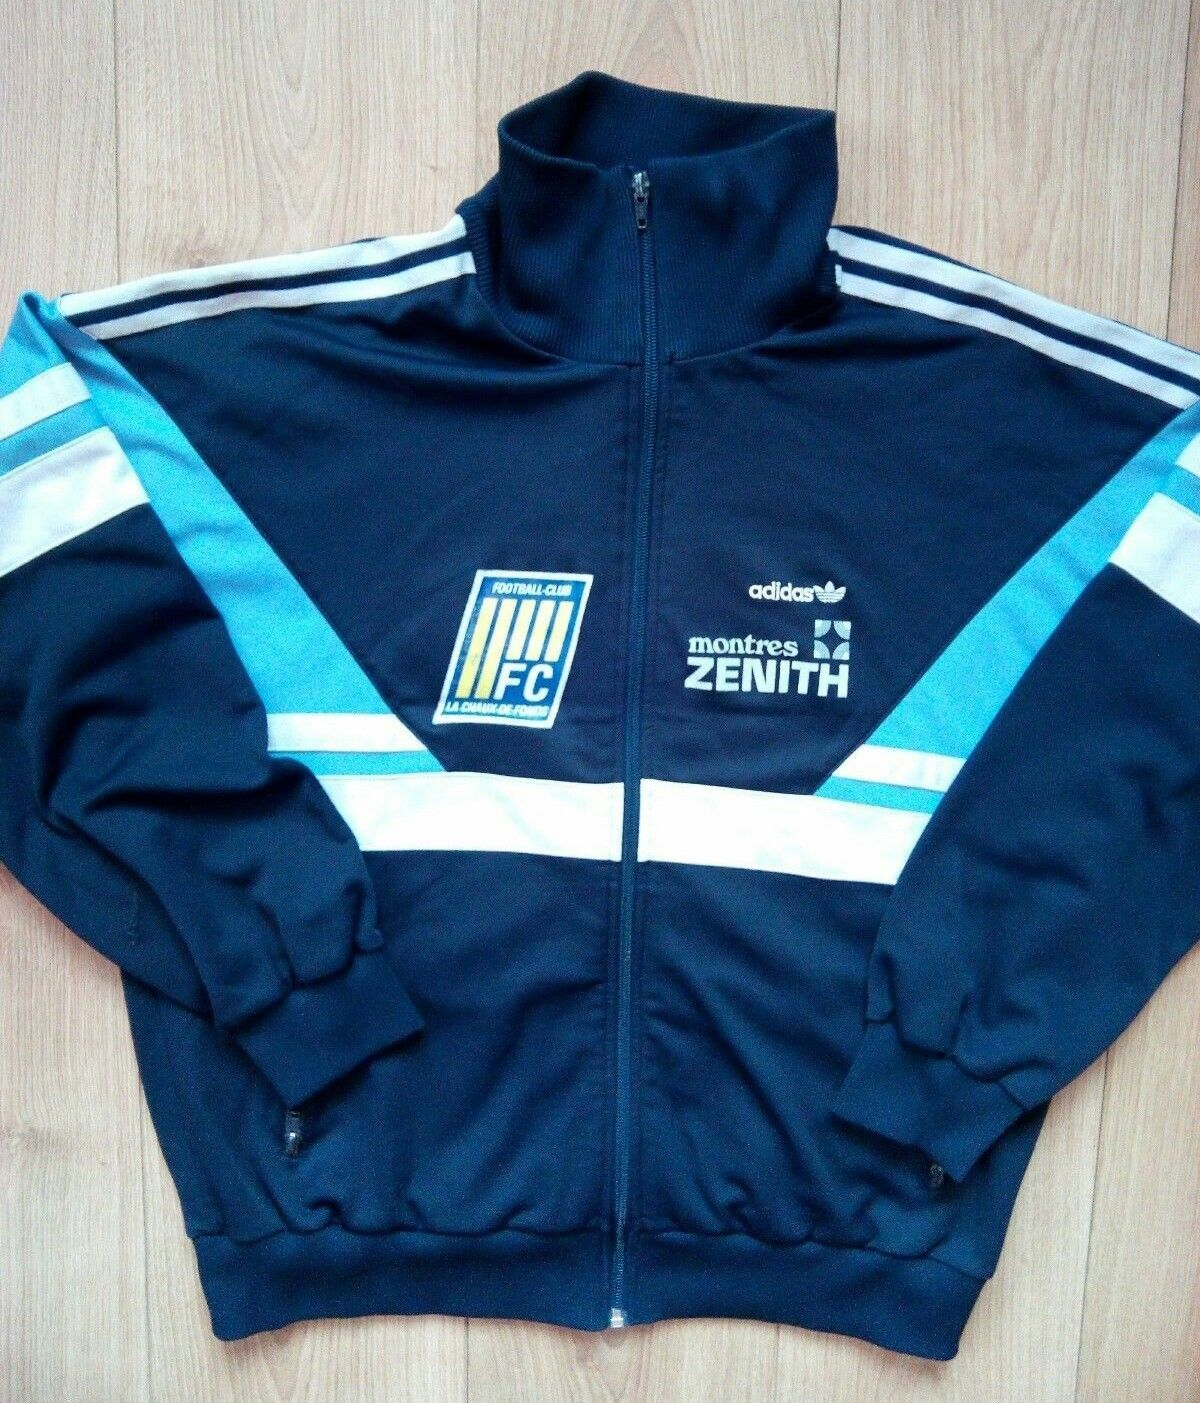 Adidas Originals 80's mens vintage tracksuit top jacket, in